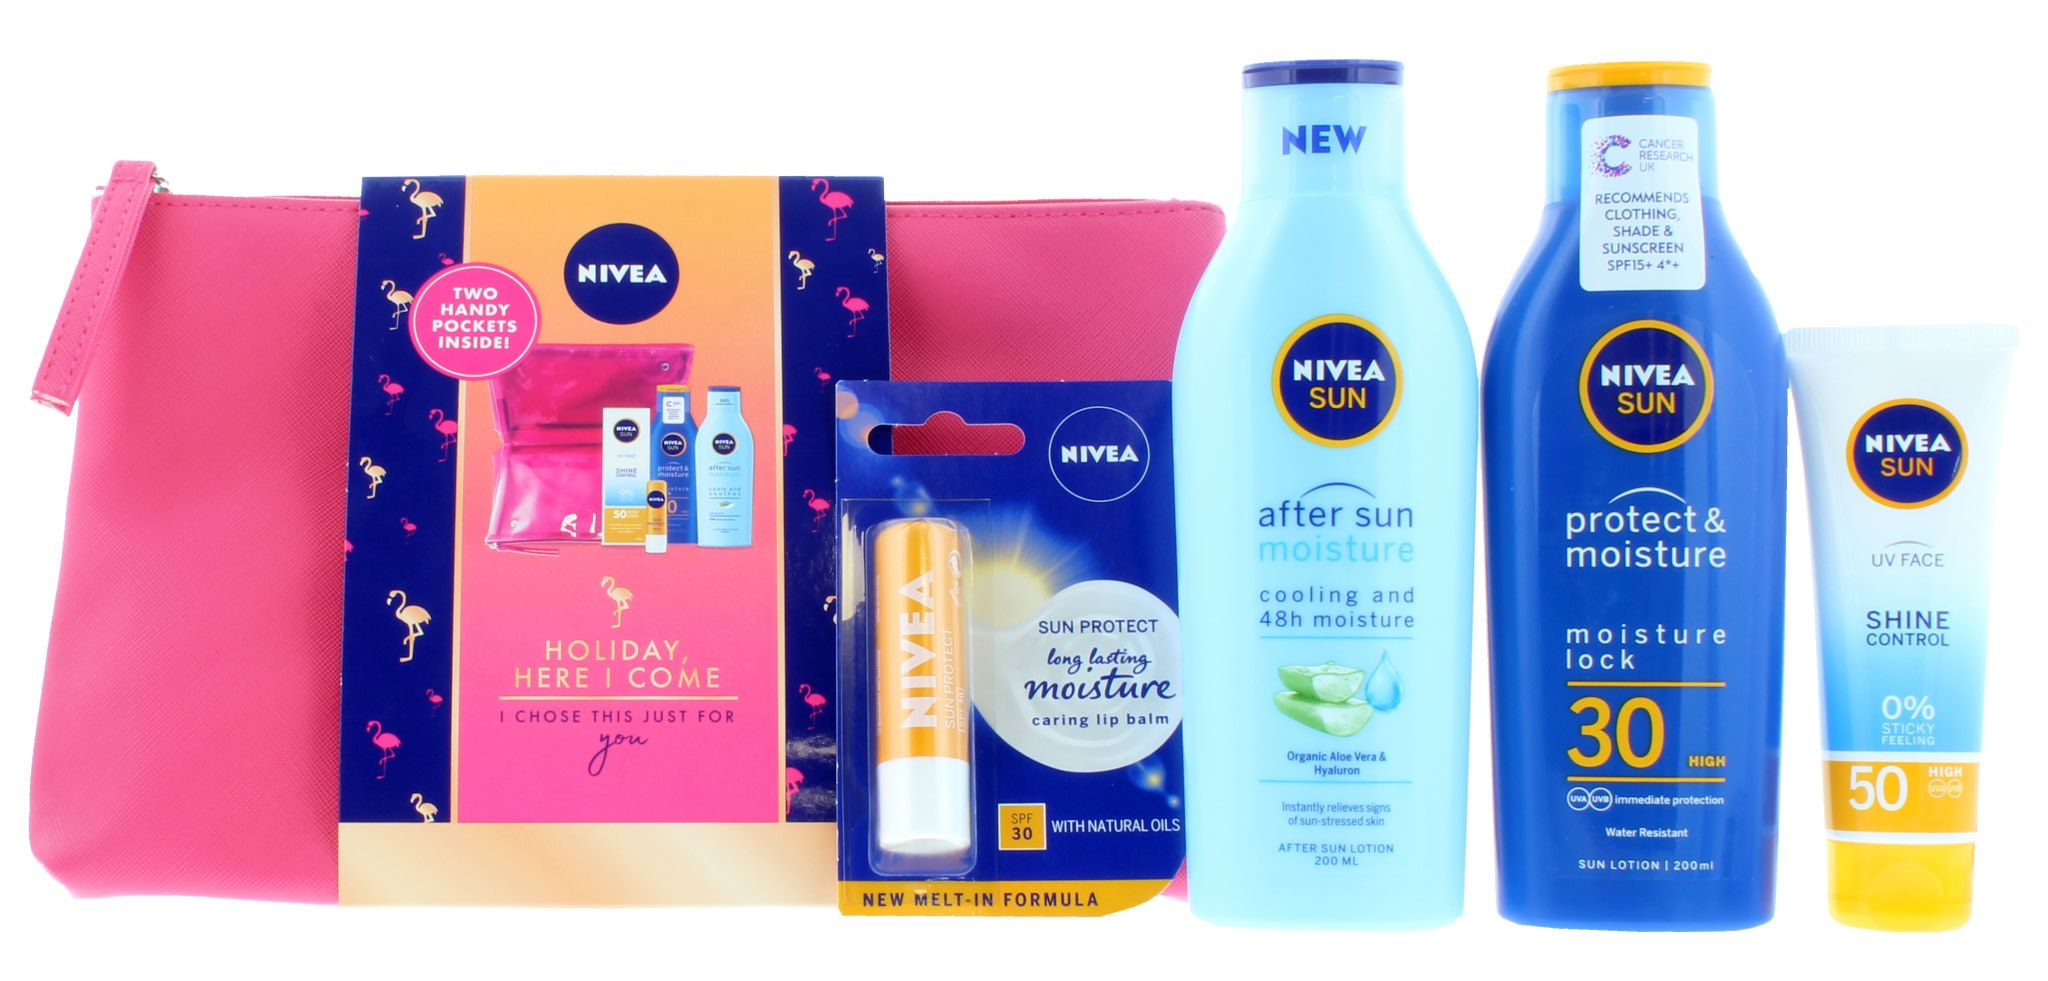 2 x Nivea Sun Holiday Here I Come - 200ml SPF30 After Sun, Lip Balm, UV Face